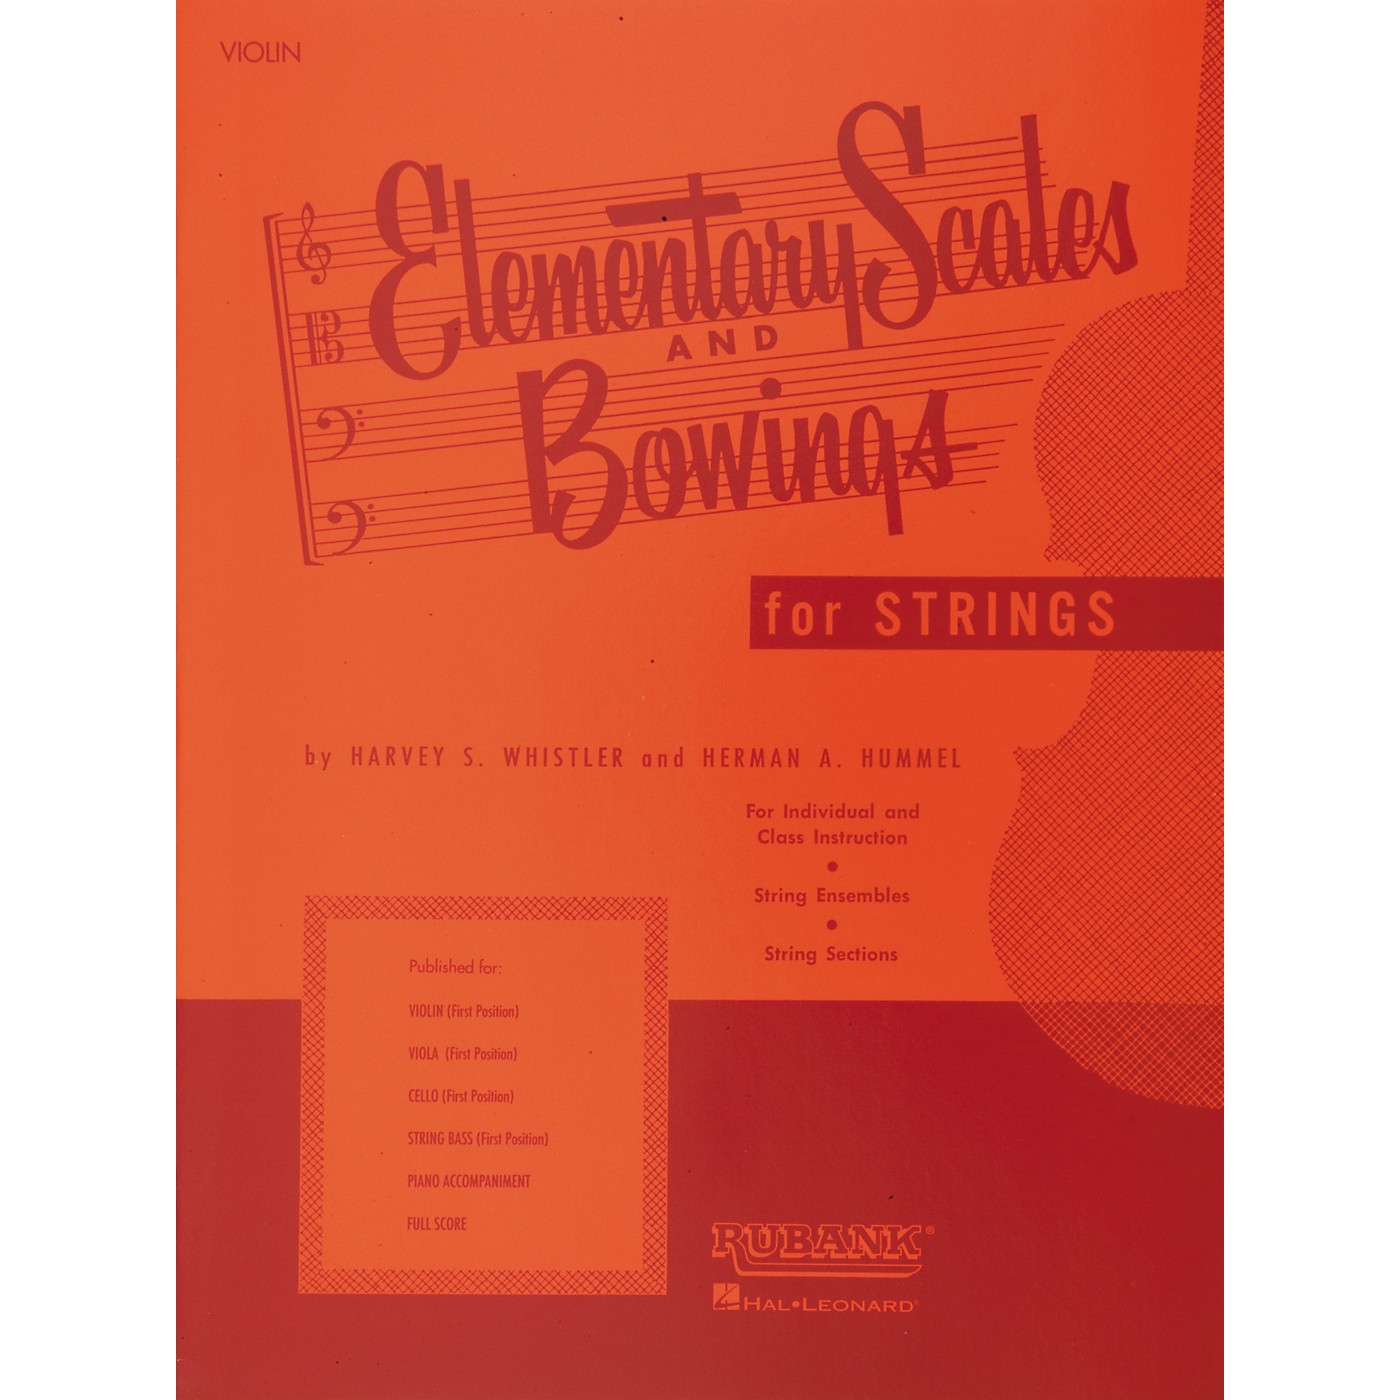 Hal Leonard Elementary Scales And Bowings for Strings for Violin thumbnail